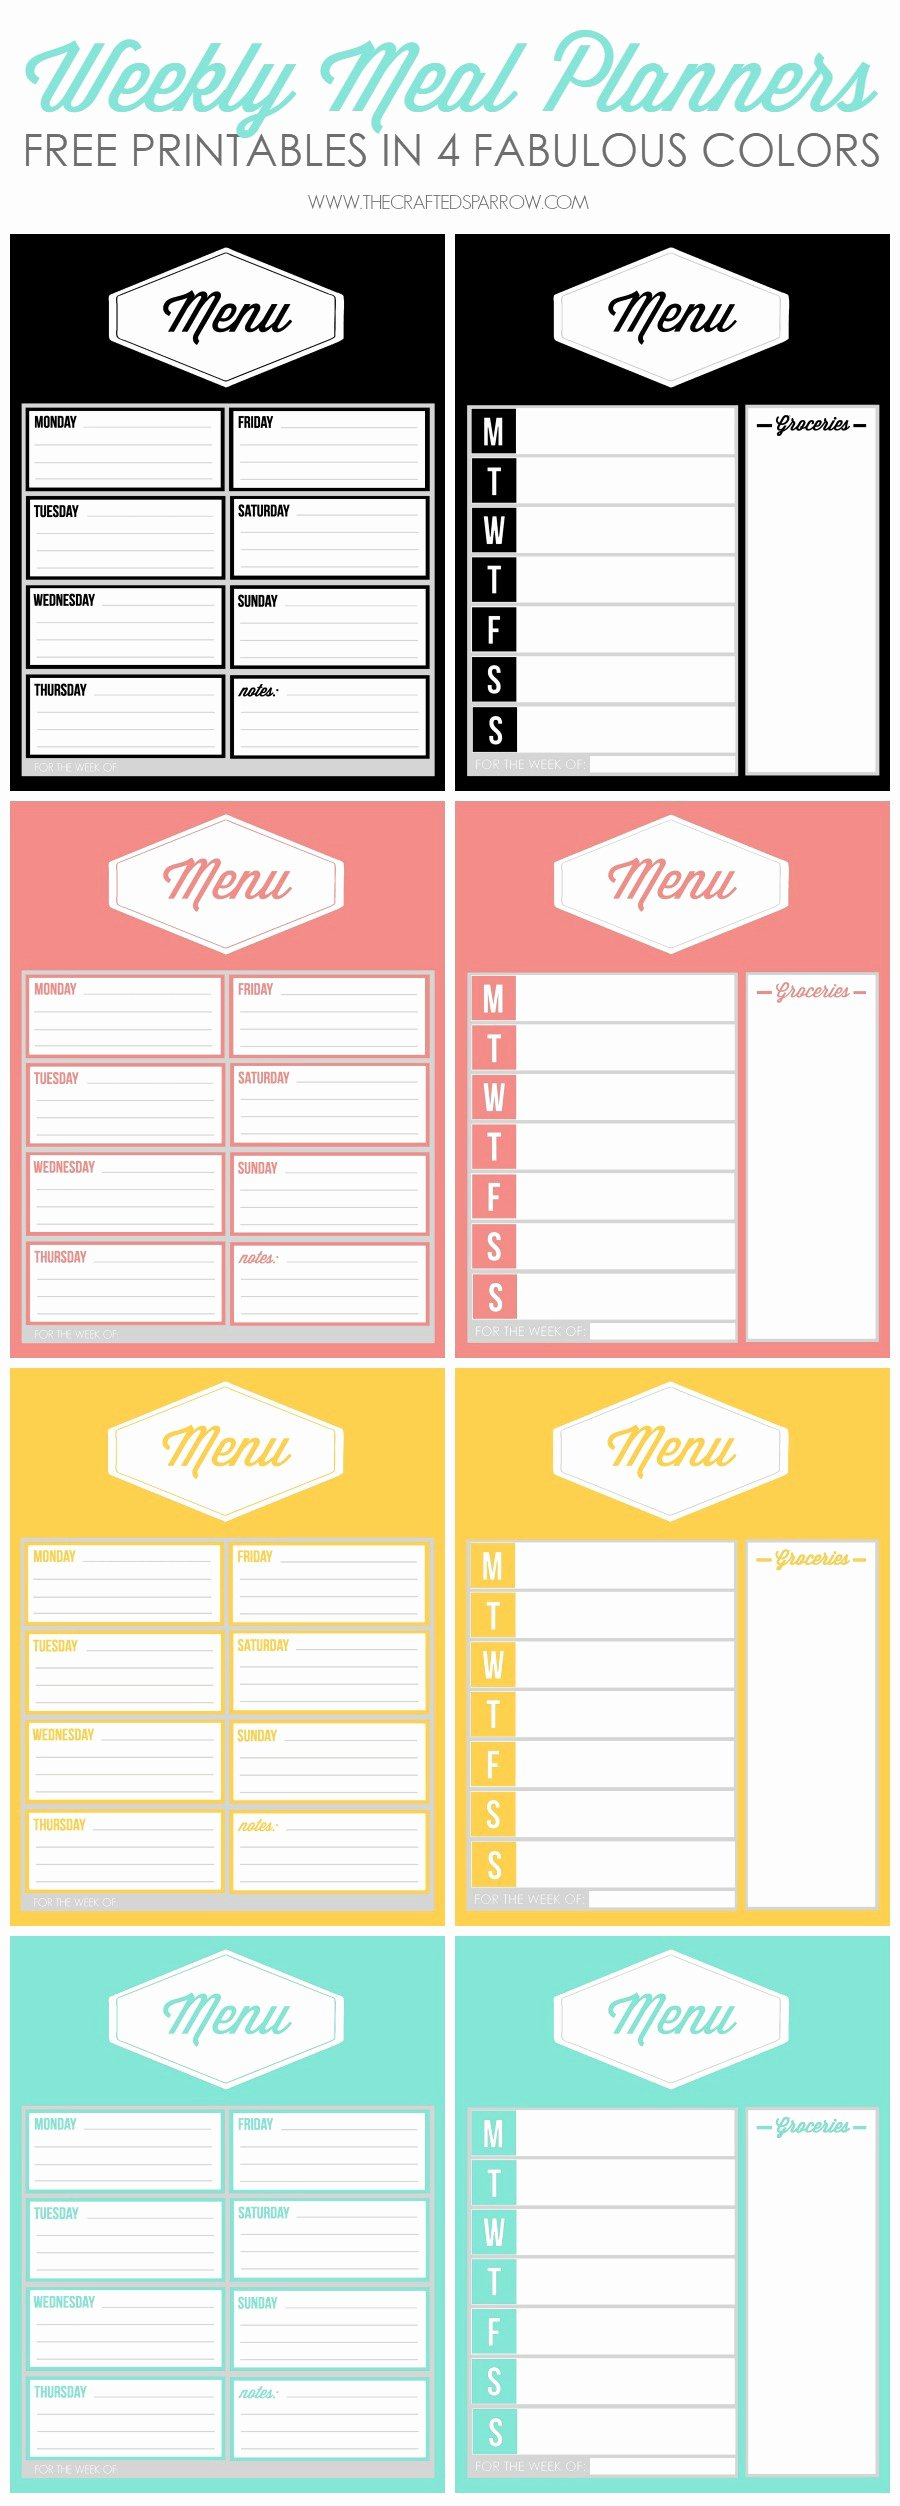 Free Menu Plan Template Unique Free Printable Weekly Meal Planners